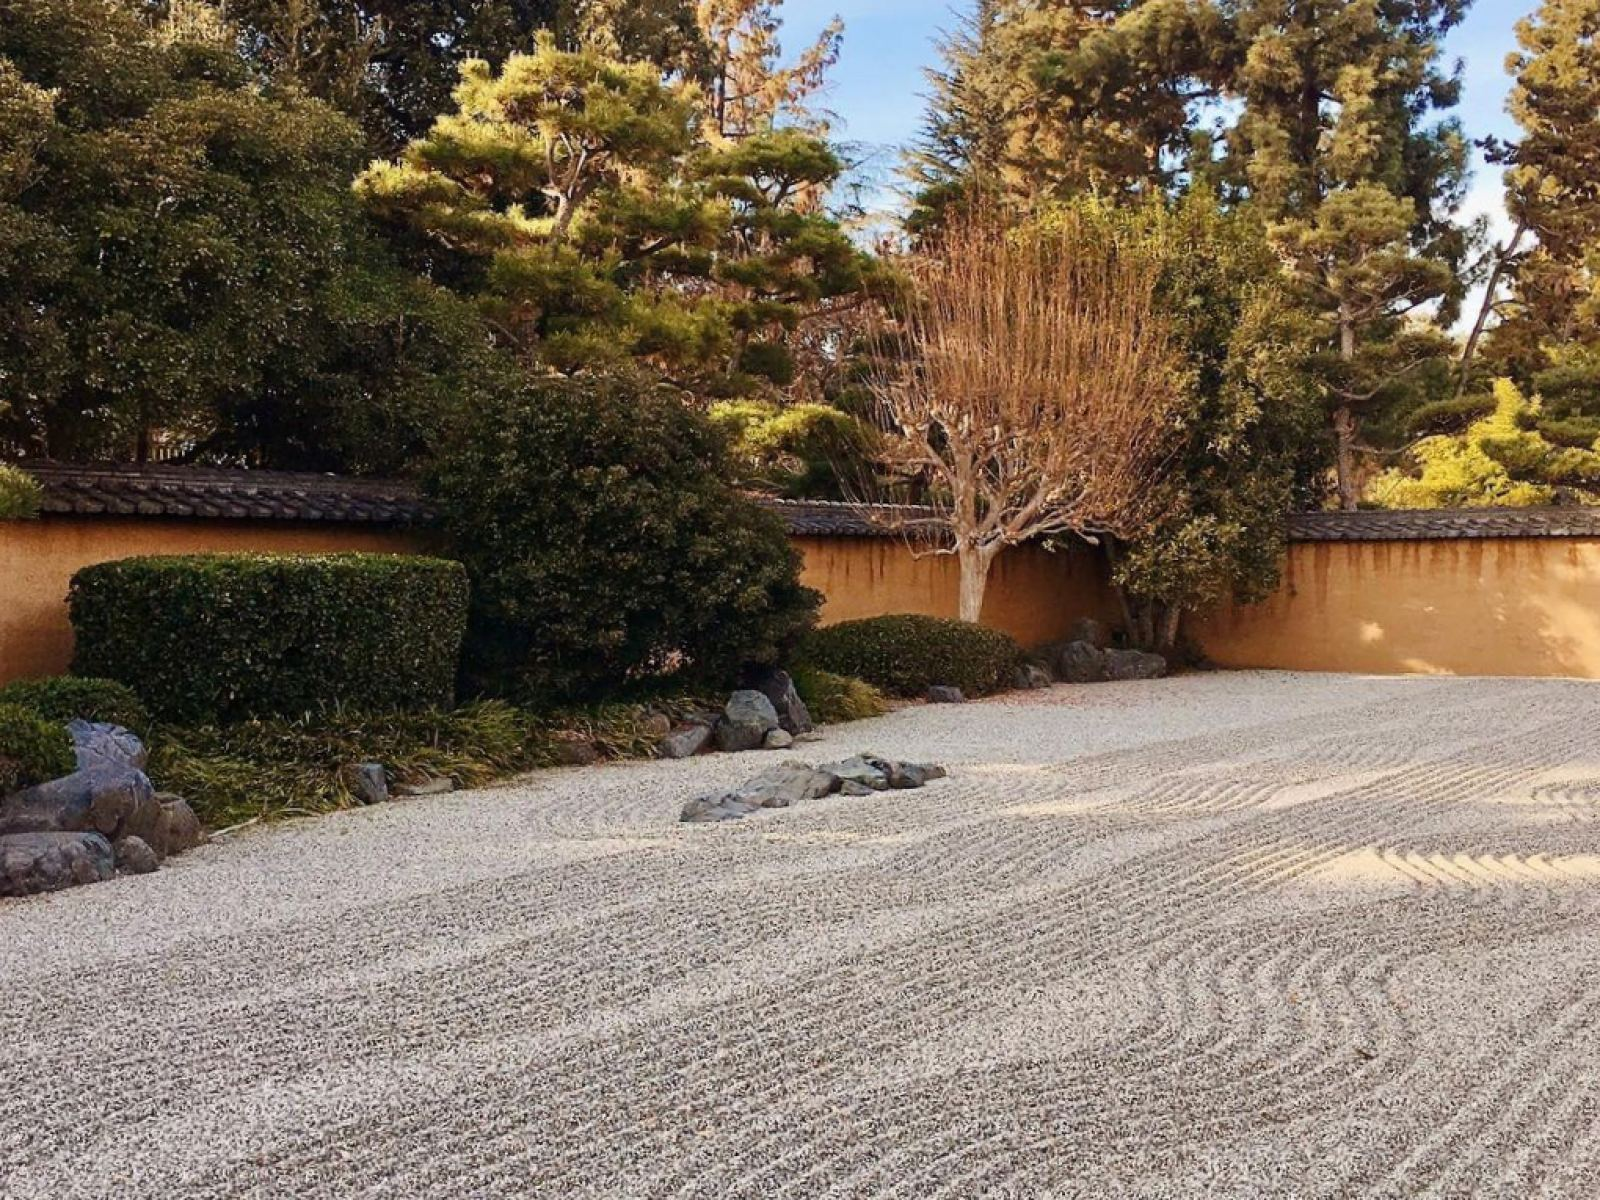 Zen Court at the Japanese Garden in The Huntington Library